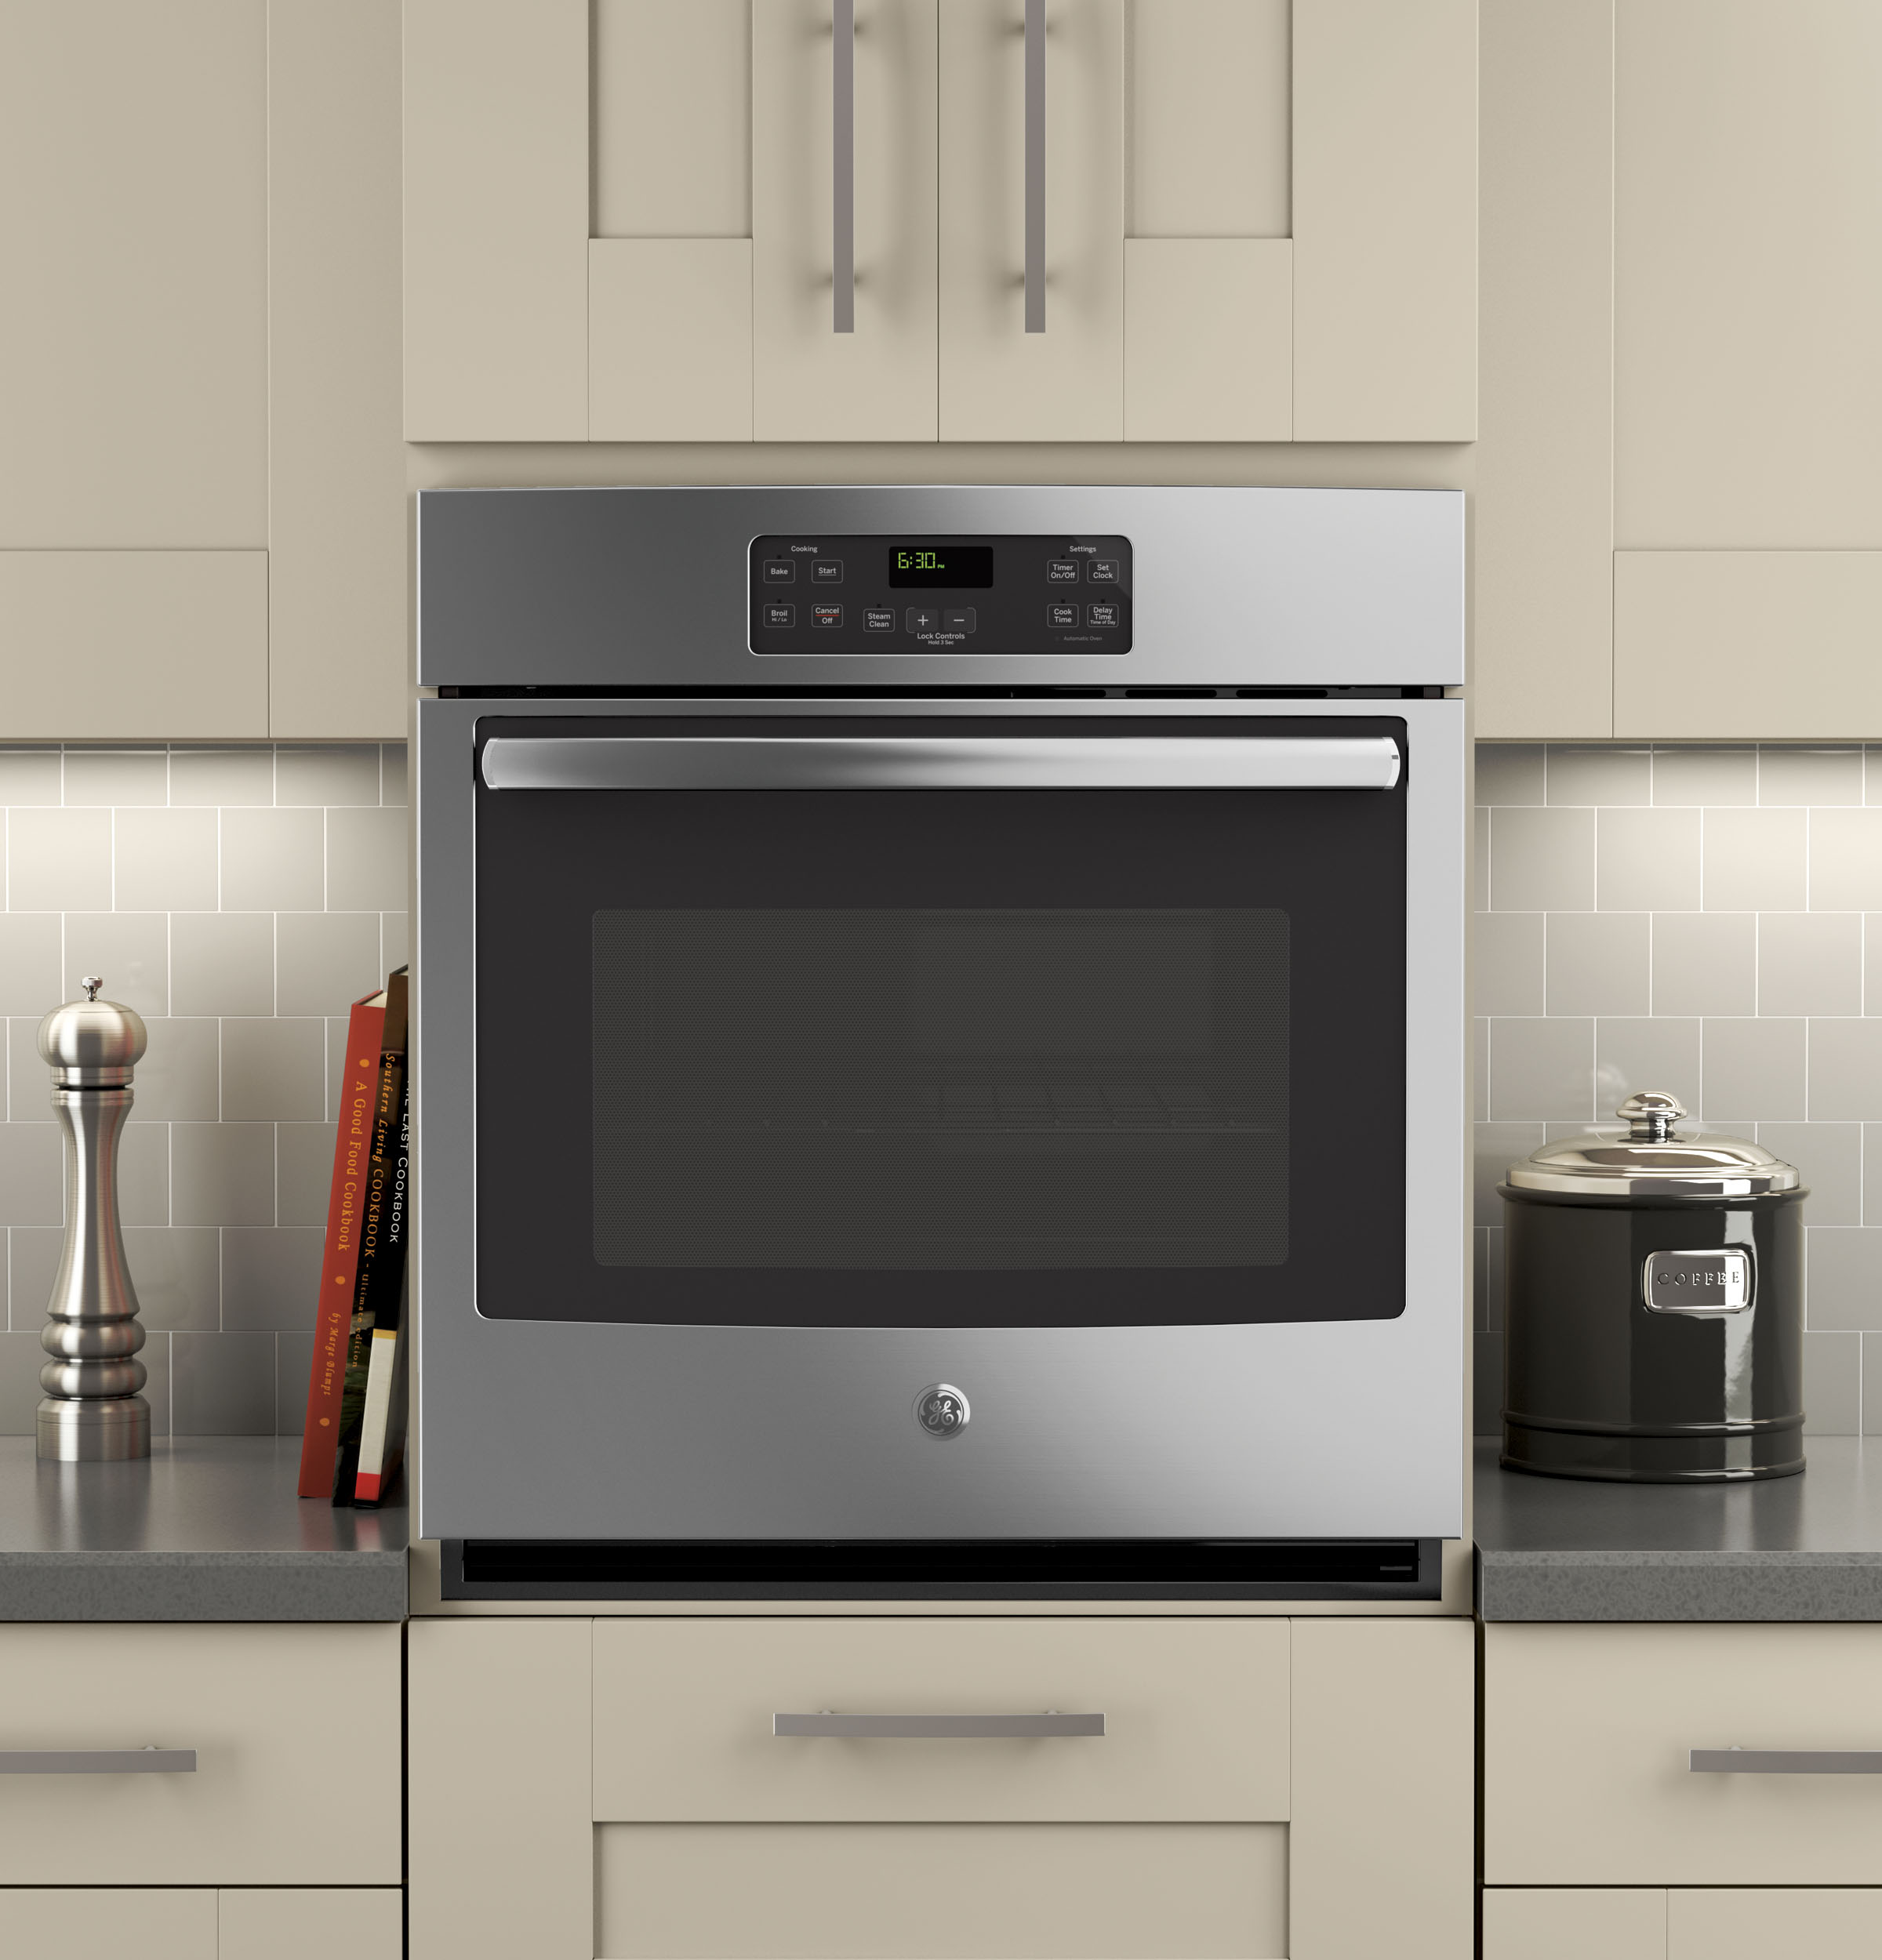 ge® 27 built in single wall oven jk1000sfss ge appliances product image product image